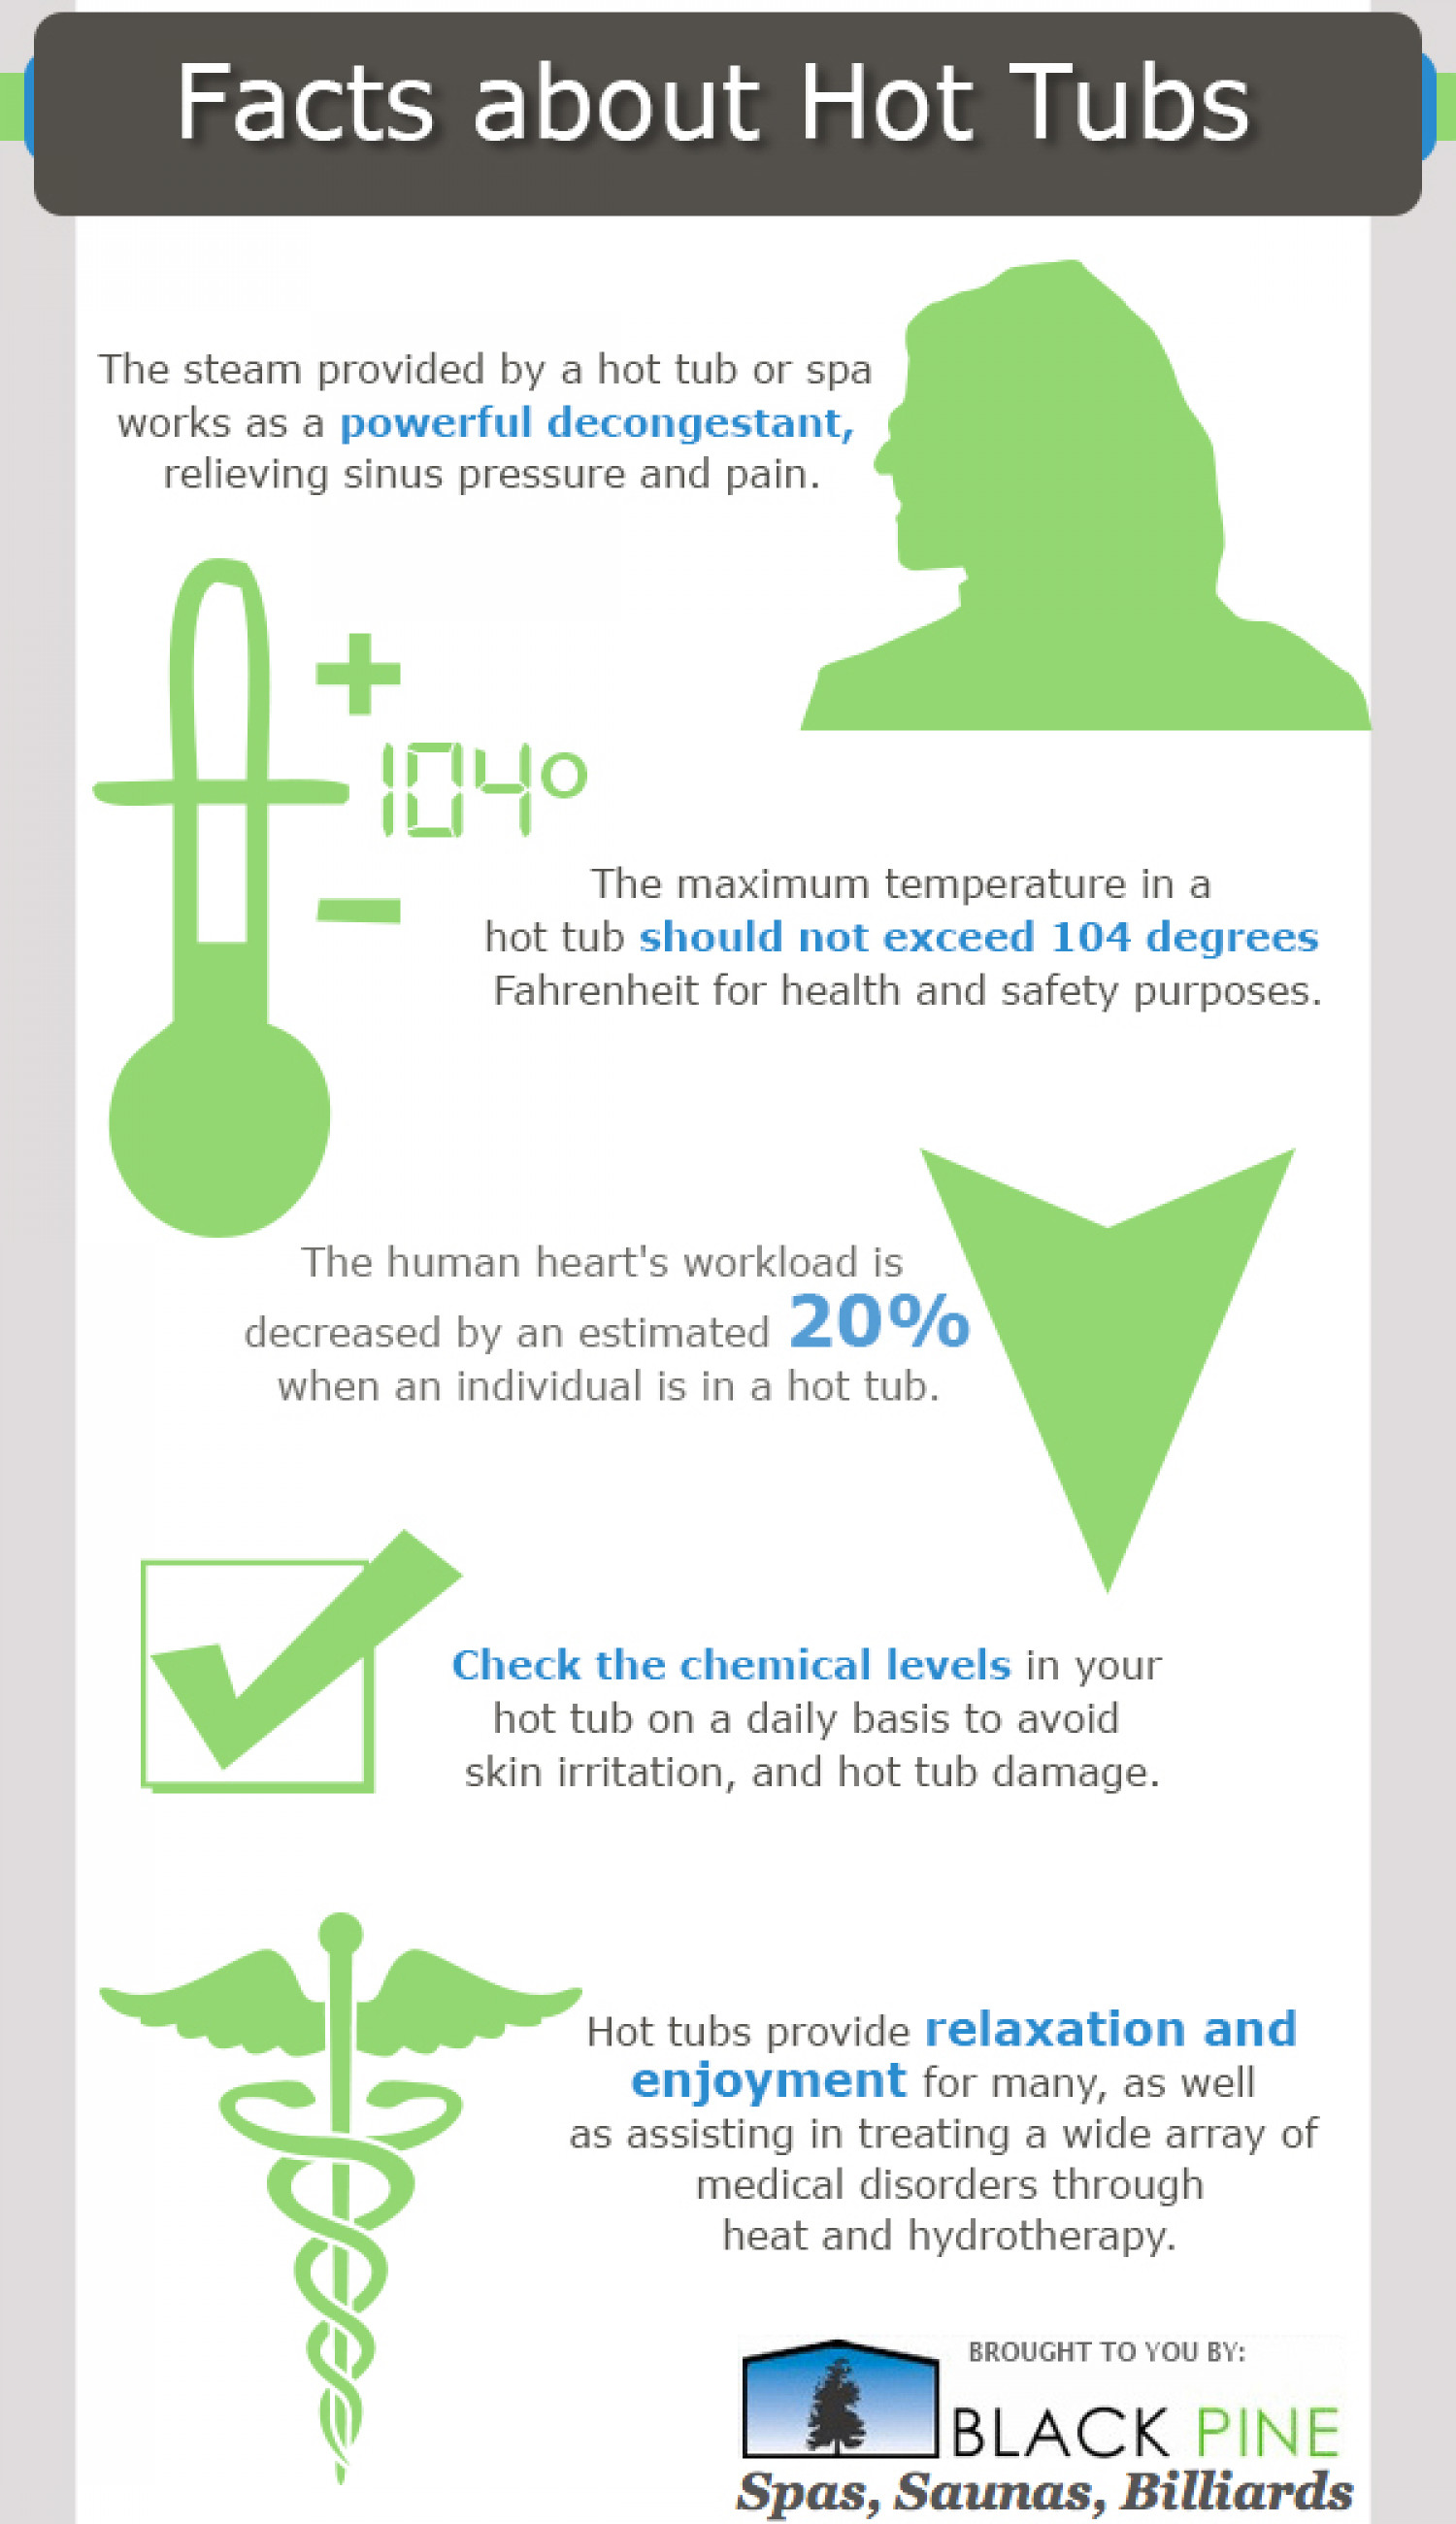 Facts about Hot Tubs Infographic